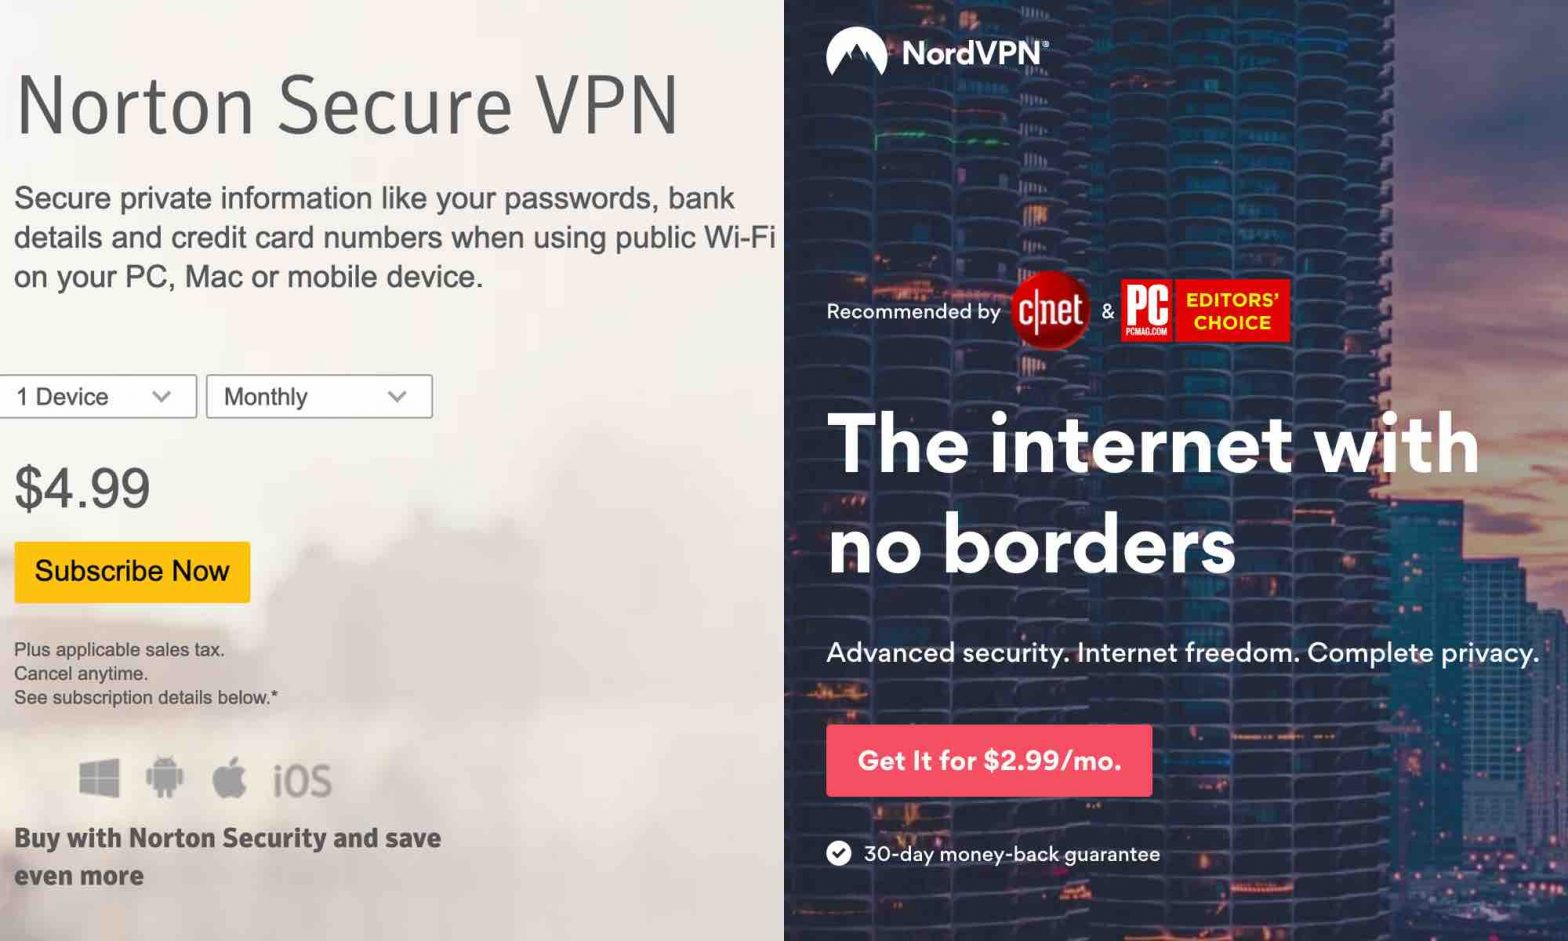 Norton VPN vs NordVPN